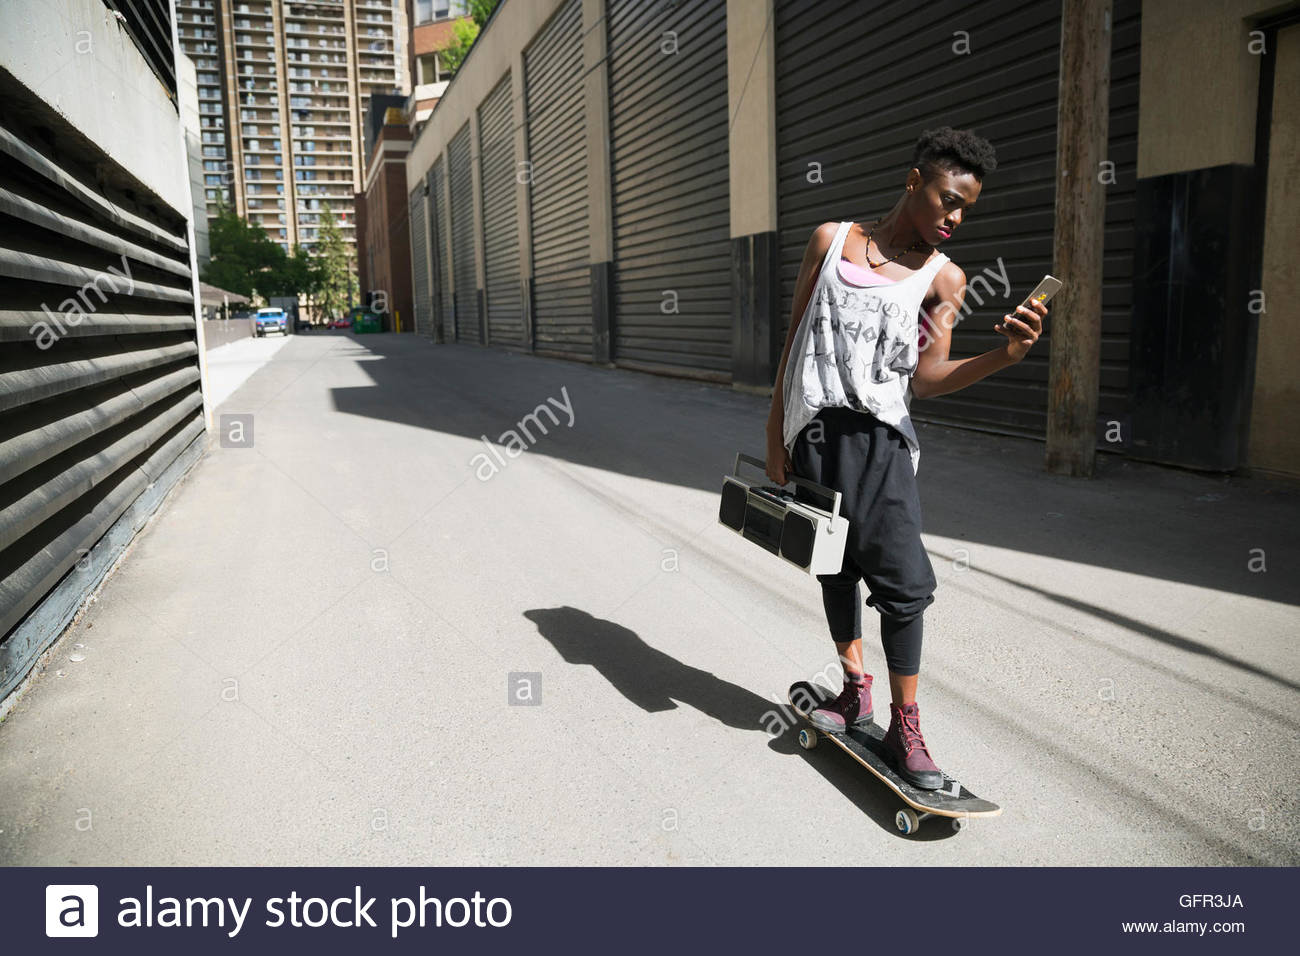 Cool young woman skateboarding with boom box and texting in urban alley - Stock Image